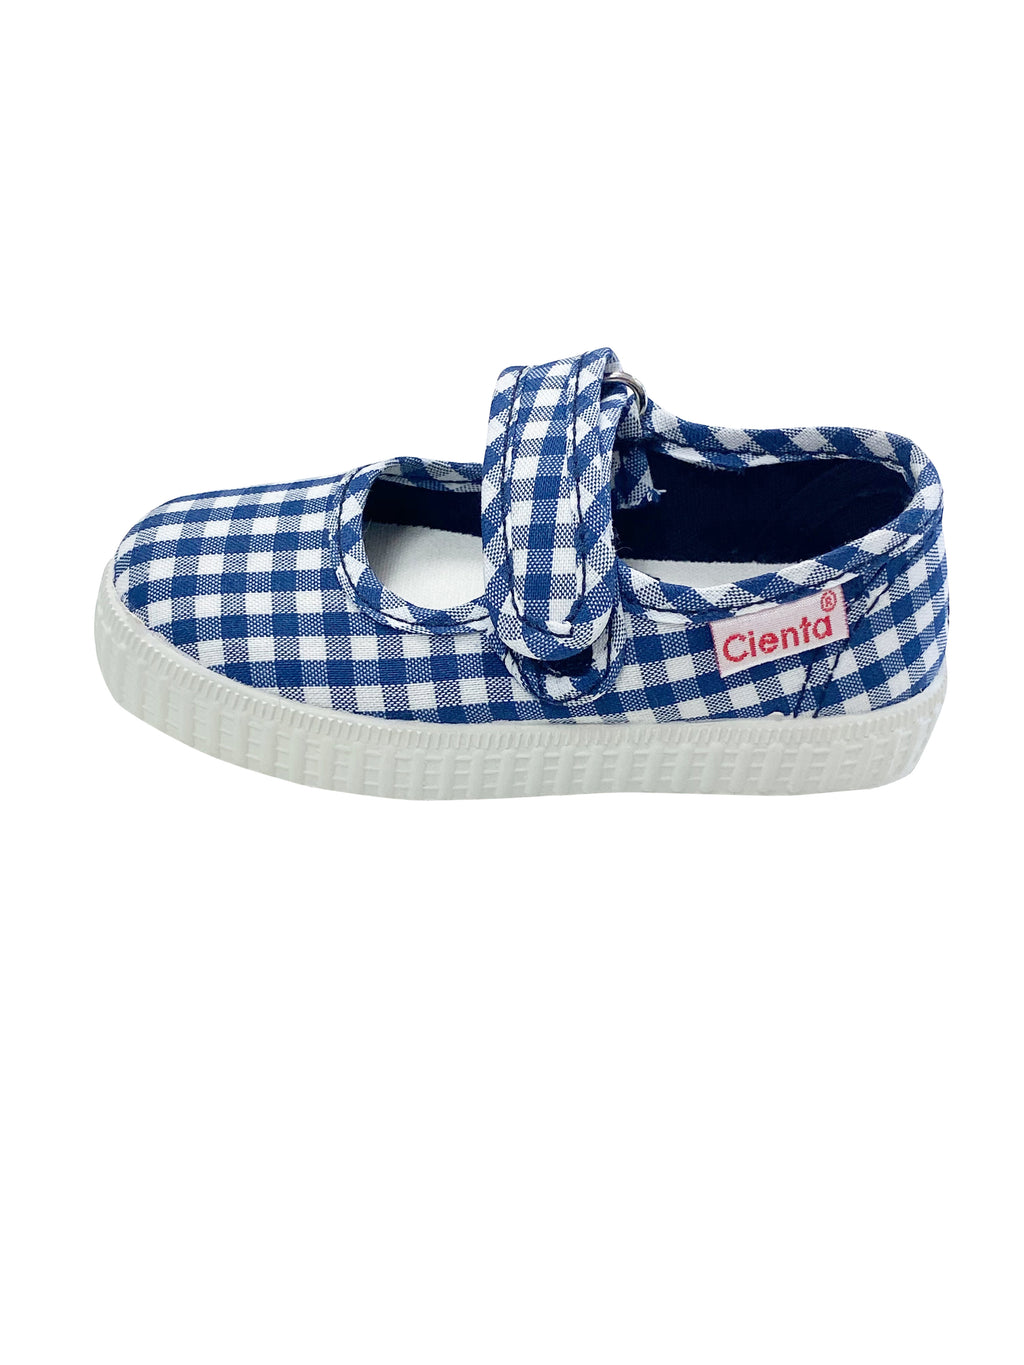 Cienta Kids Mary Jane Navy Gingham - Born Childrens Boutique